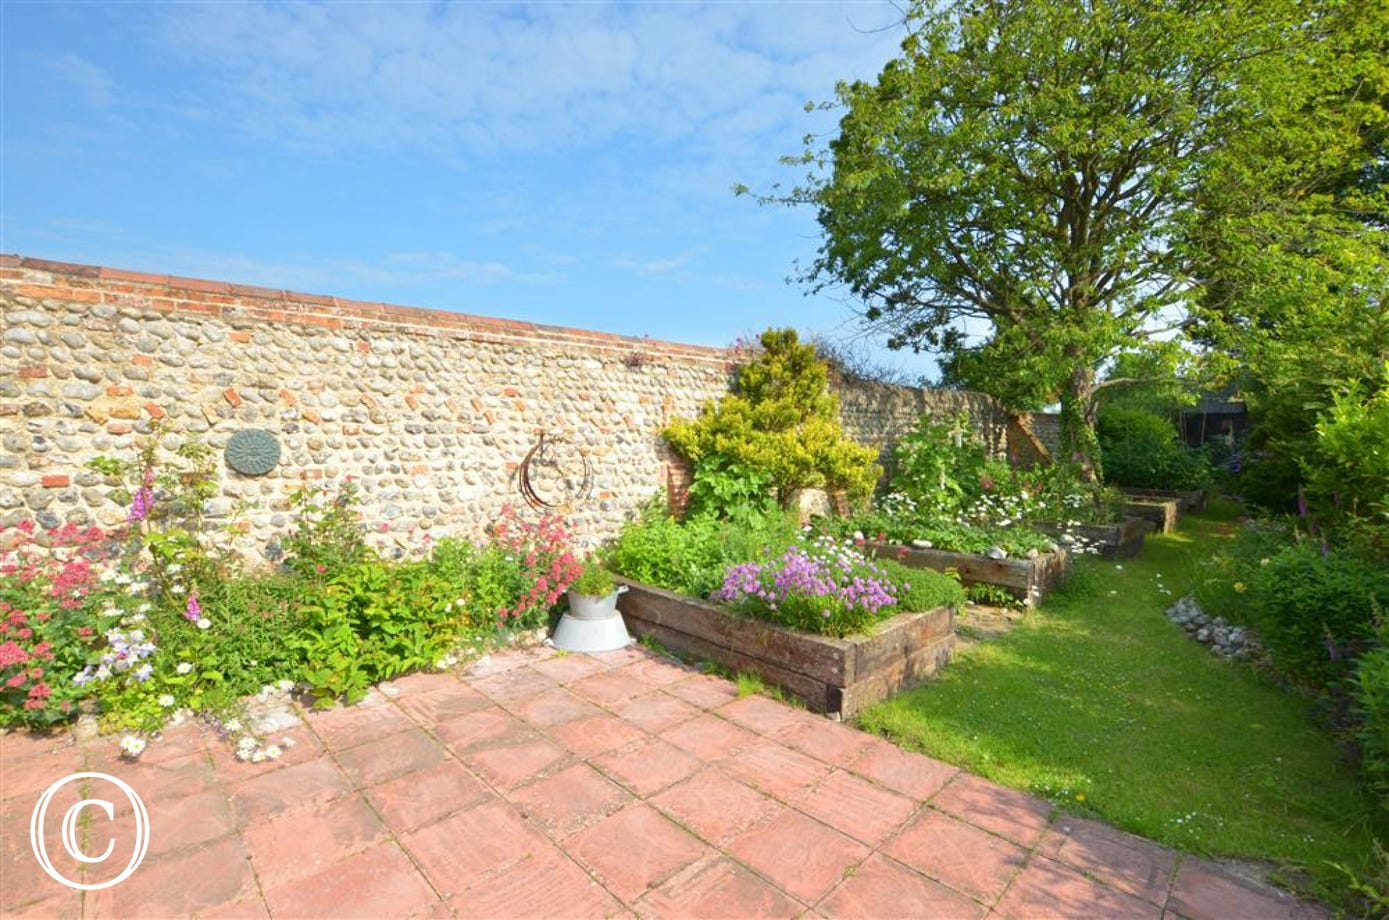 Fully enclosed garden with lawned area, raised herb beds, patio, garden furniture and barbecue, ideal for al fresco dining